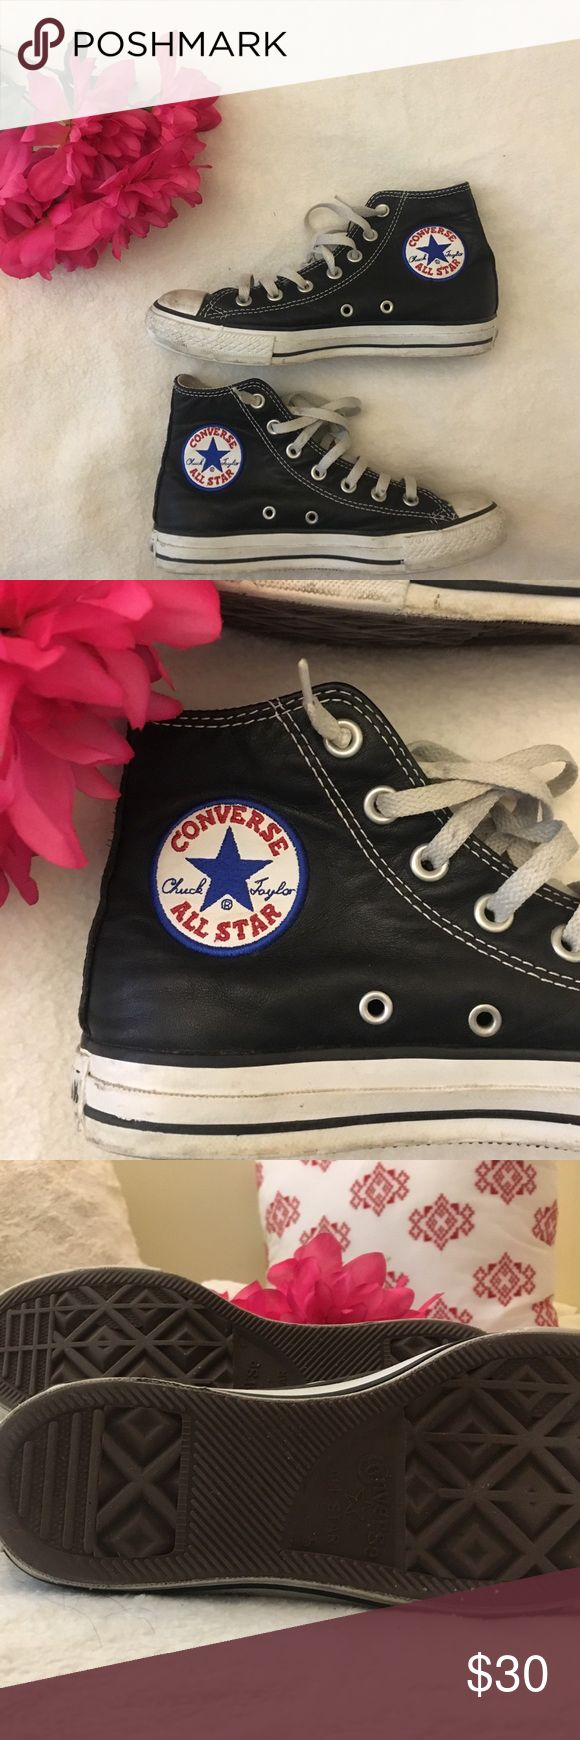 Black leather converse Black leather converse. Worn in a little but still in good condition. Converse Shoes Sneakers